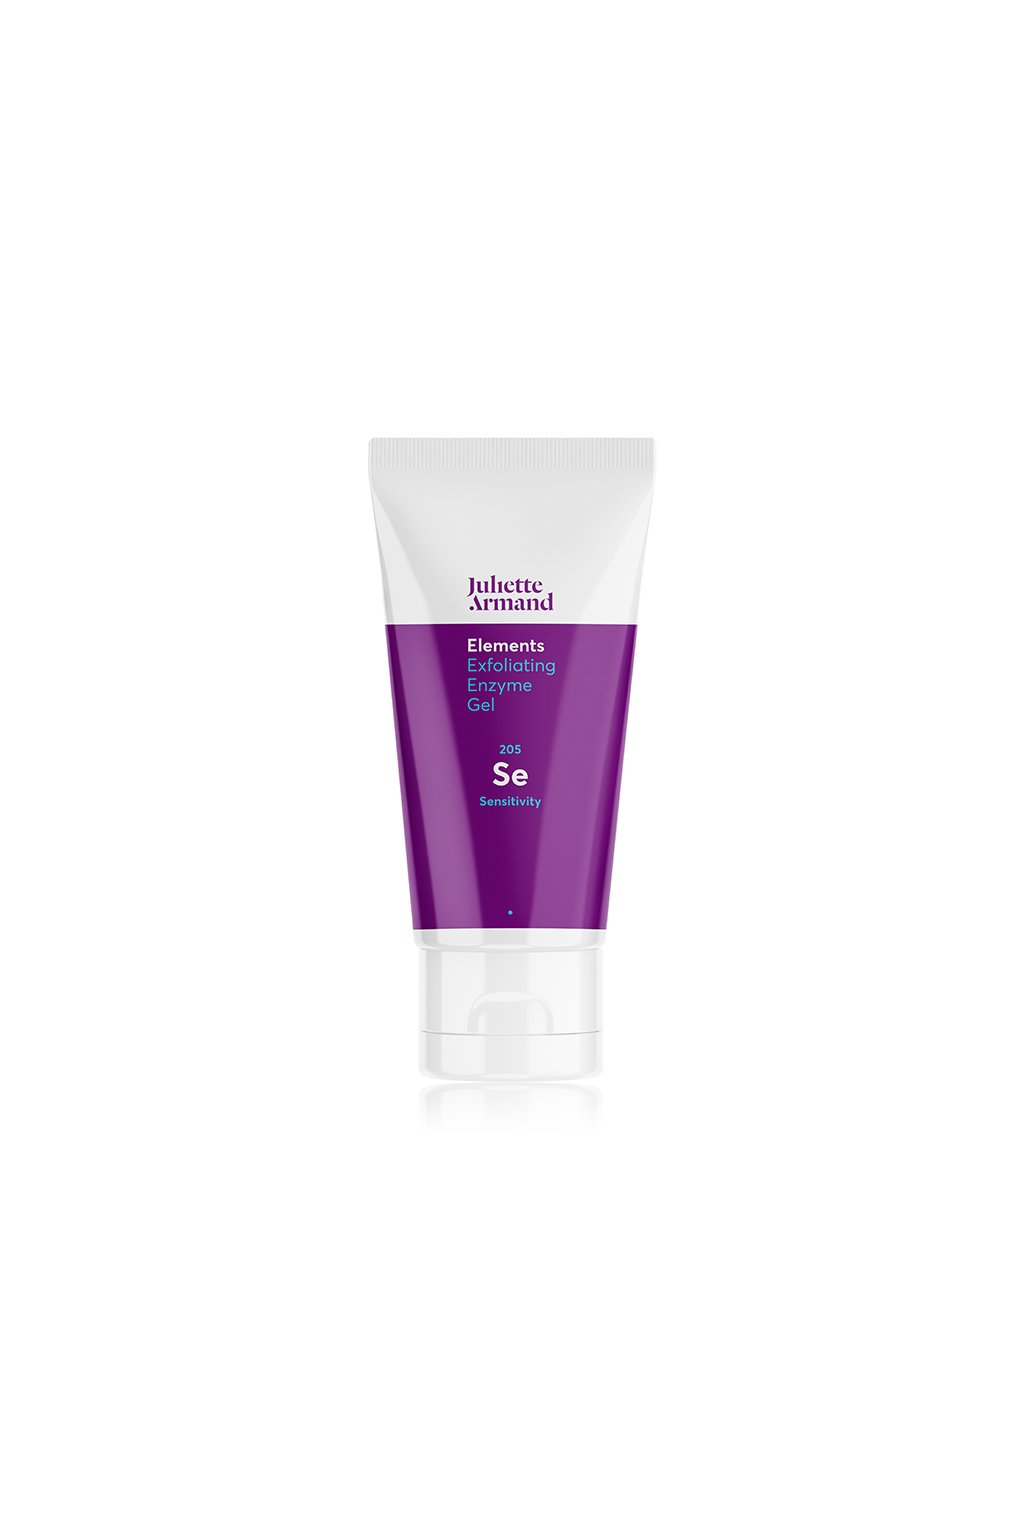 Exfoliating Enzyme Gel 50ml 850